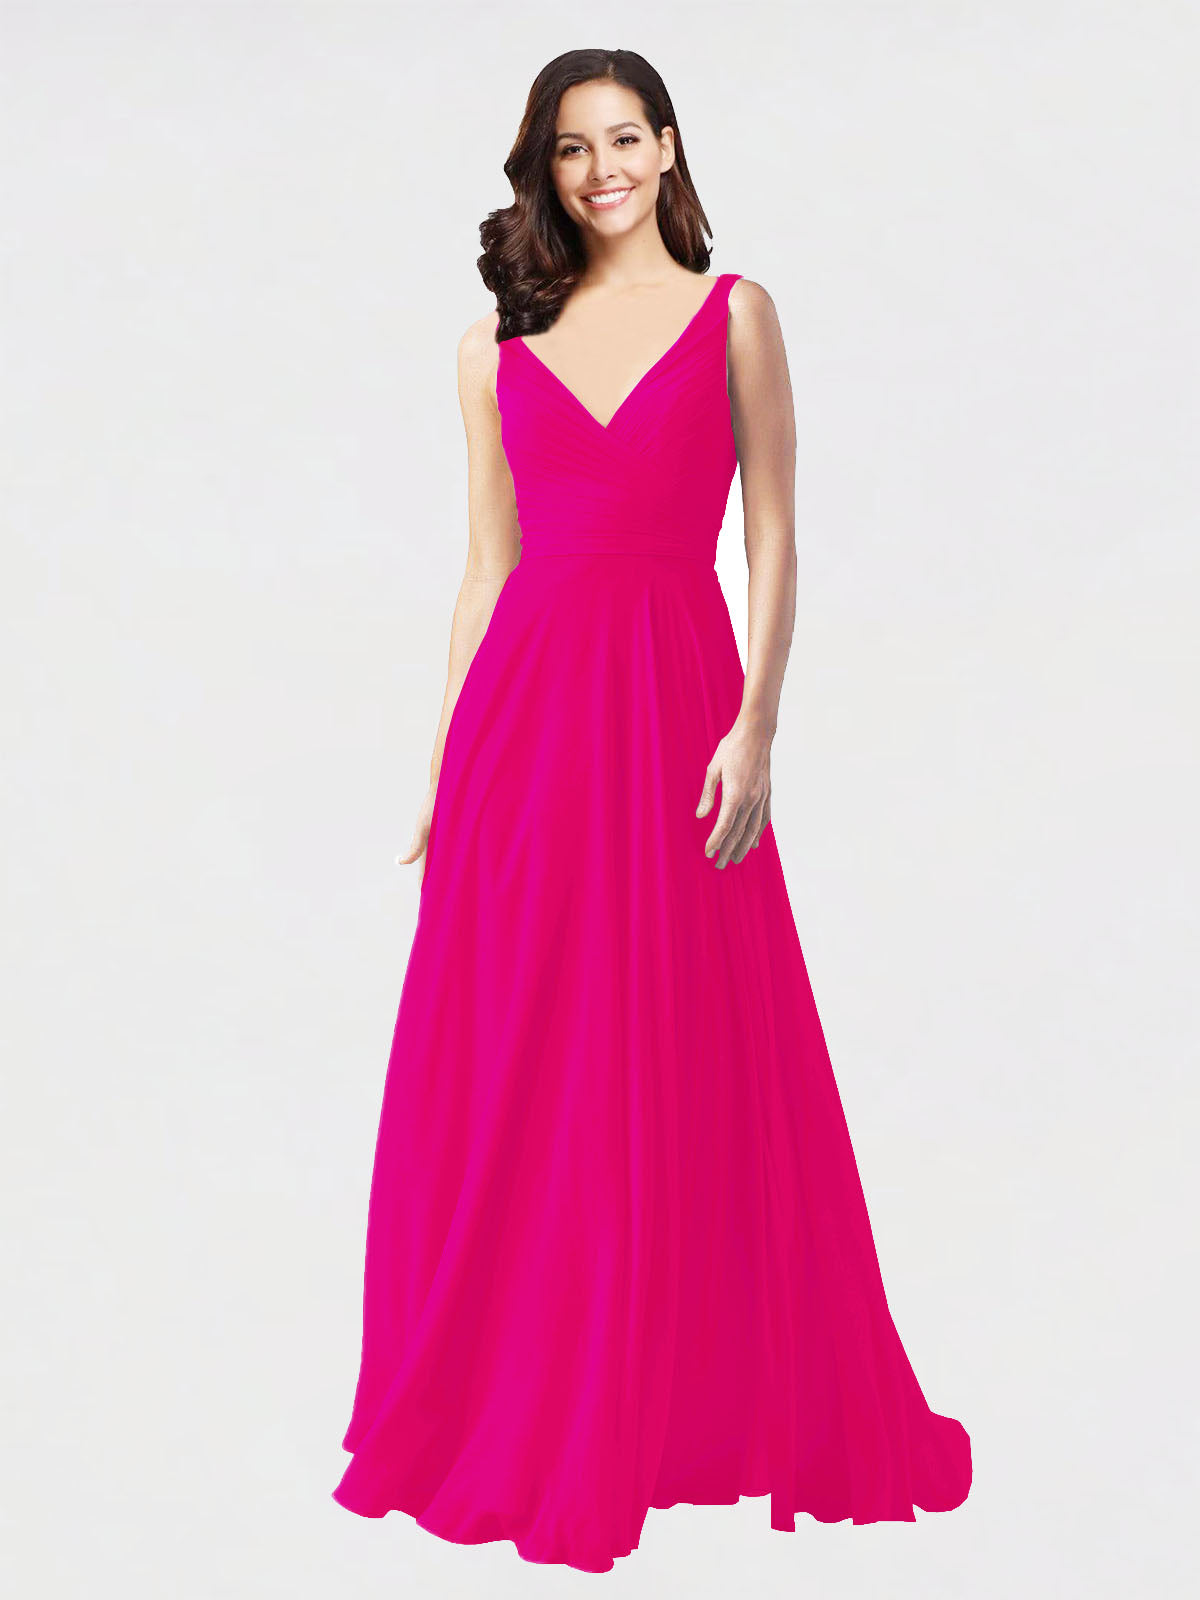 Long A-Line V-Neck Sleeveless Fuchsia Chiffon Bridesmaid Dress Bernice